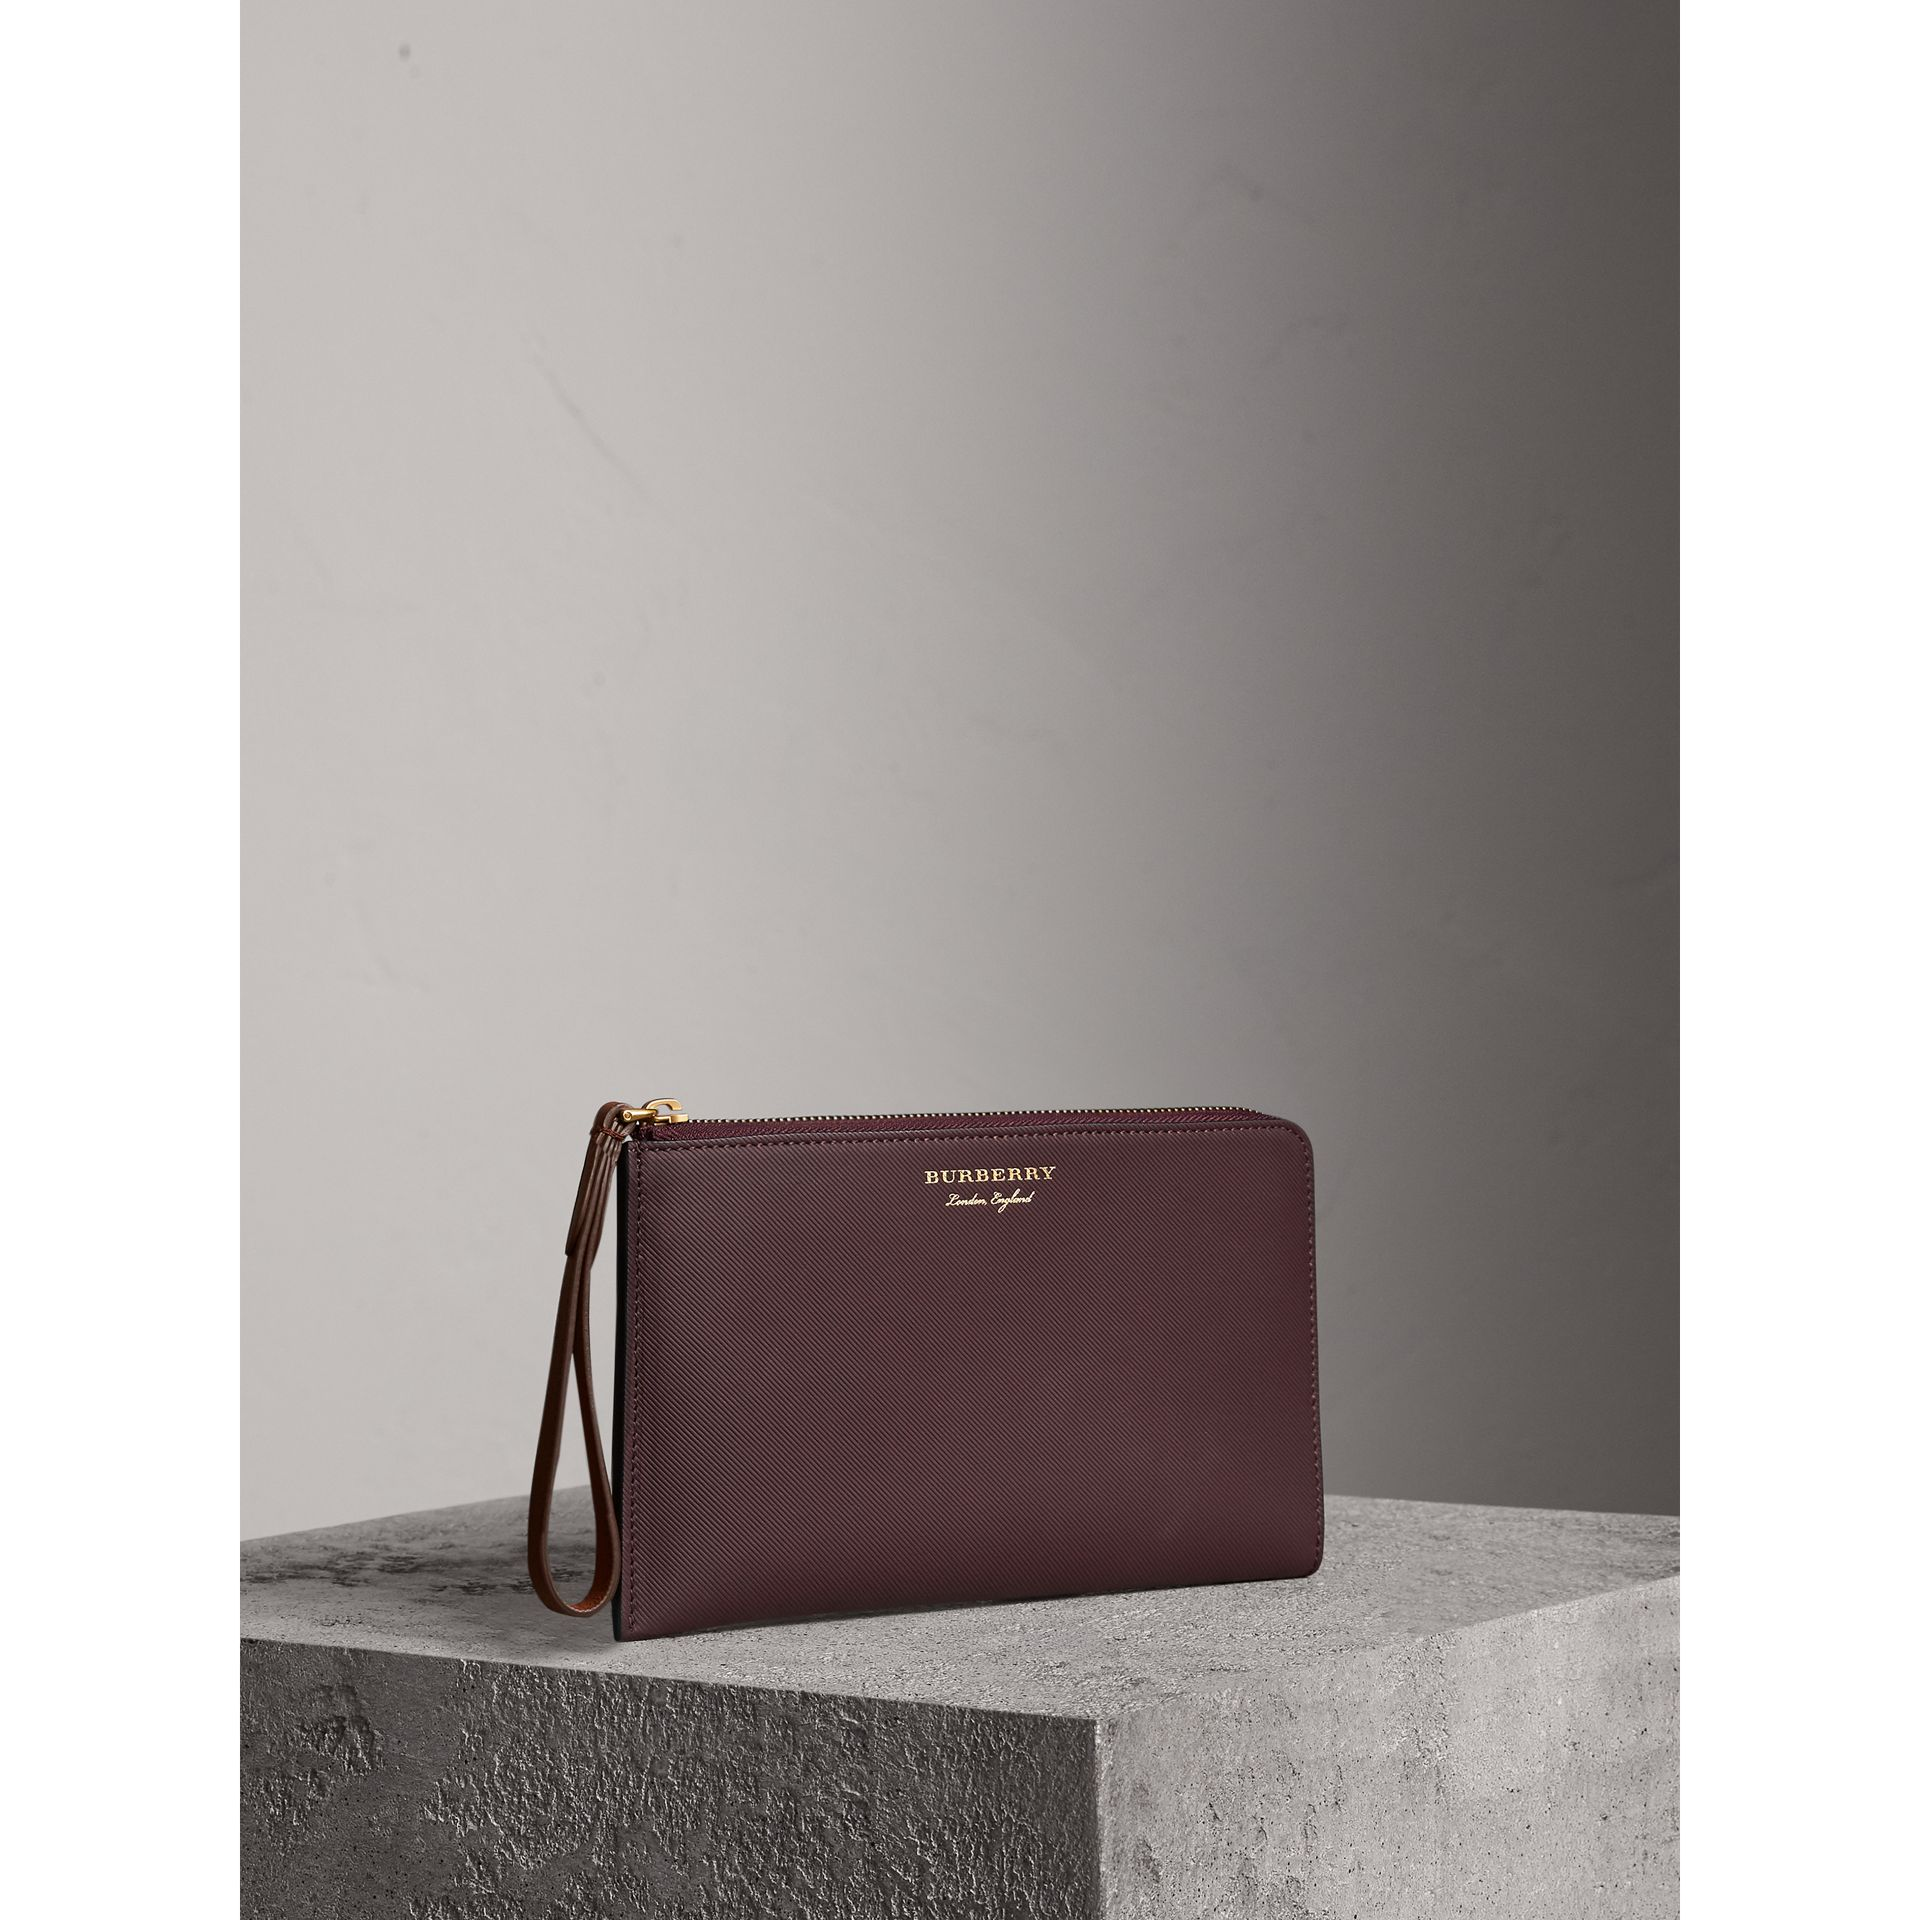 Two-tone Trench Leather Travel Wallet in Wine - Men | Burberry - gallery image 5